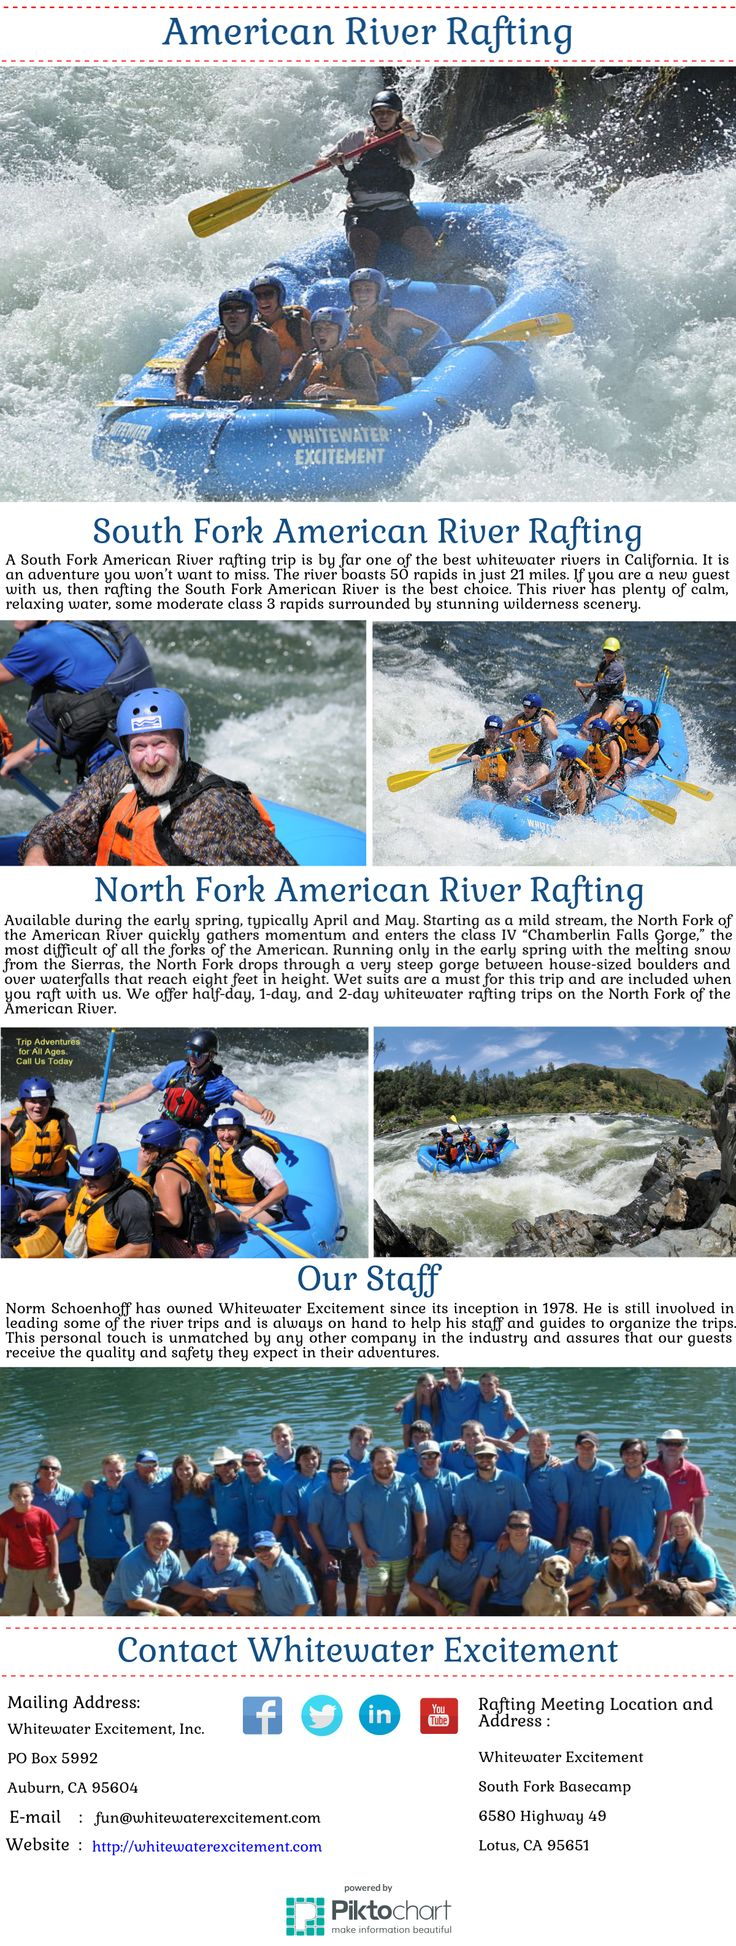 """Since 1978 we've been river rafting California through our American River white water rafting adventures. Your enjoyment & safety is our top priority.We offer 1/2 to 3-day river rafting trips in California for beginners to experienced rafters. With """"Best in Class"""" standards of safety, service, pricing, and quality."""